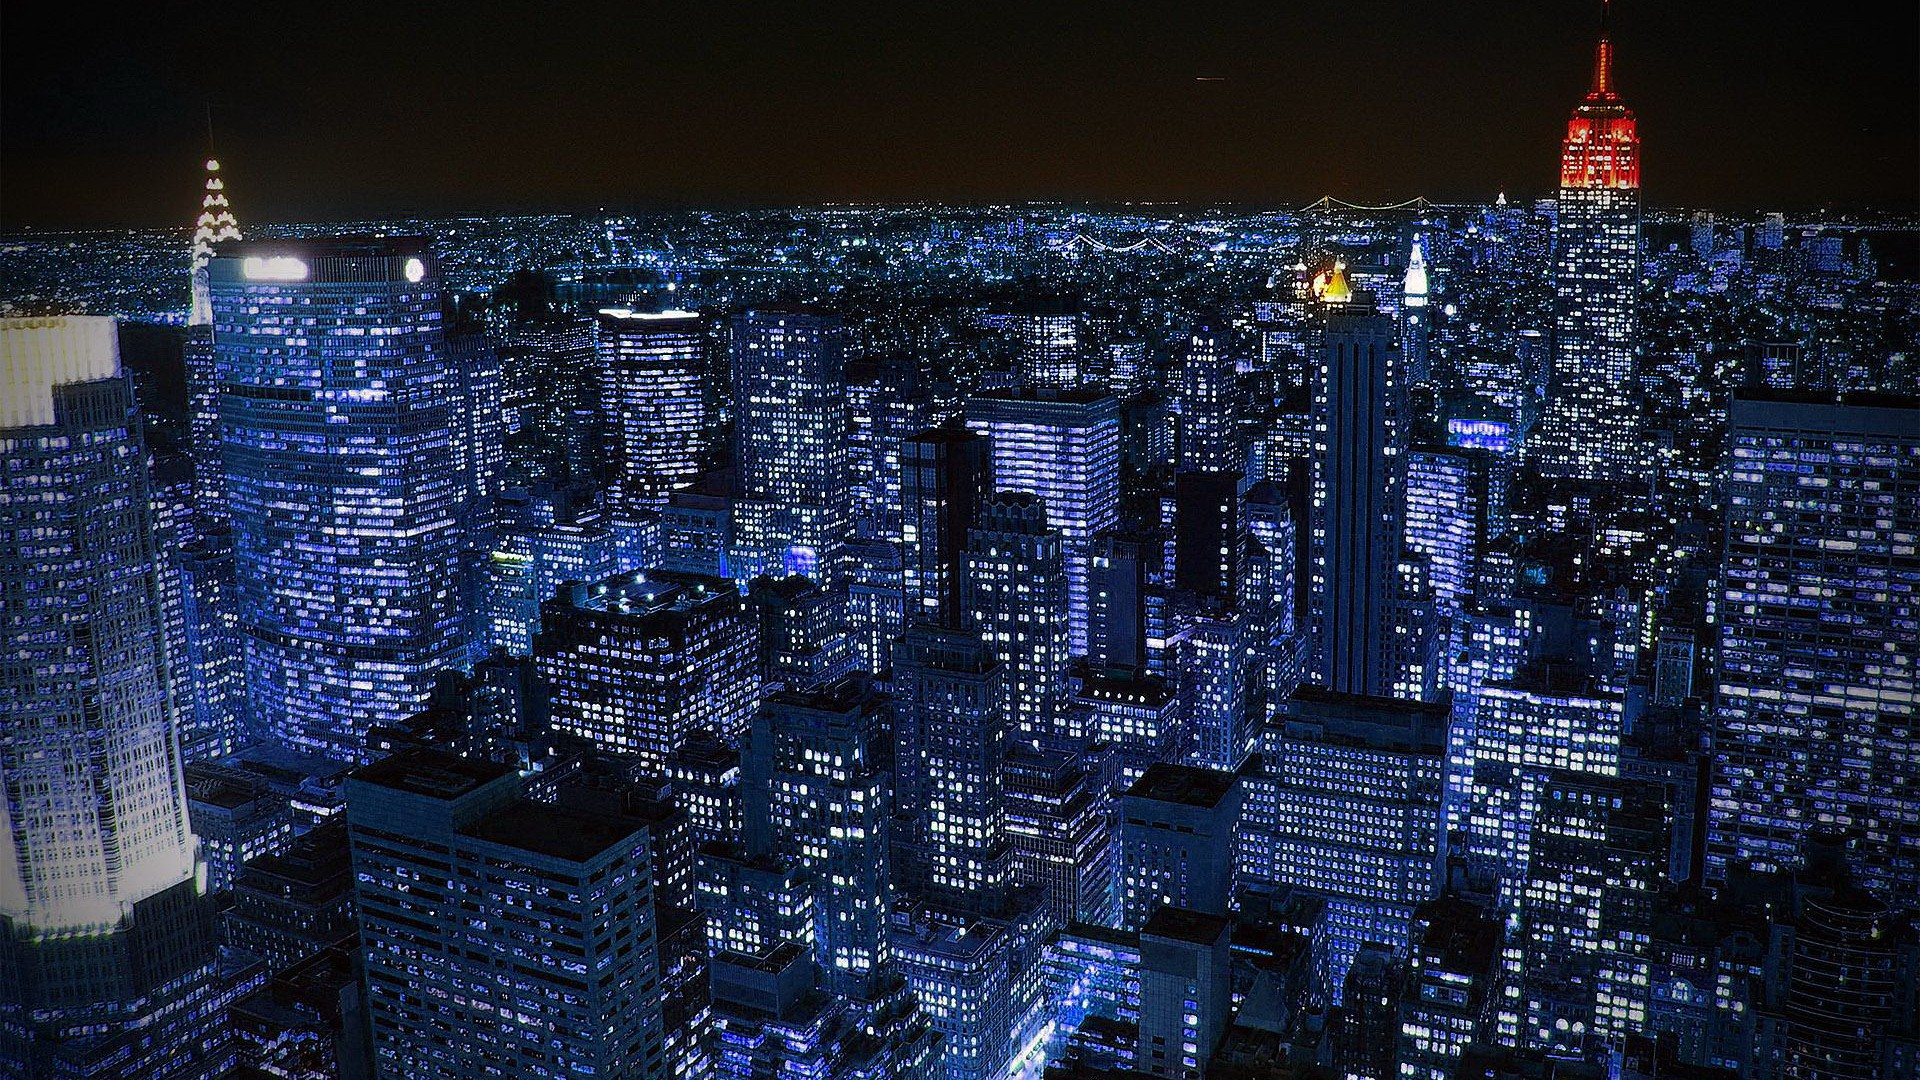 Cityscapes Night Lights New York City Scenic Skyscapes Fresh New Hd